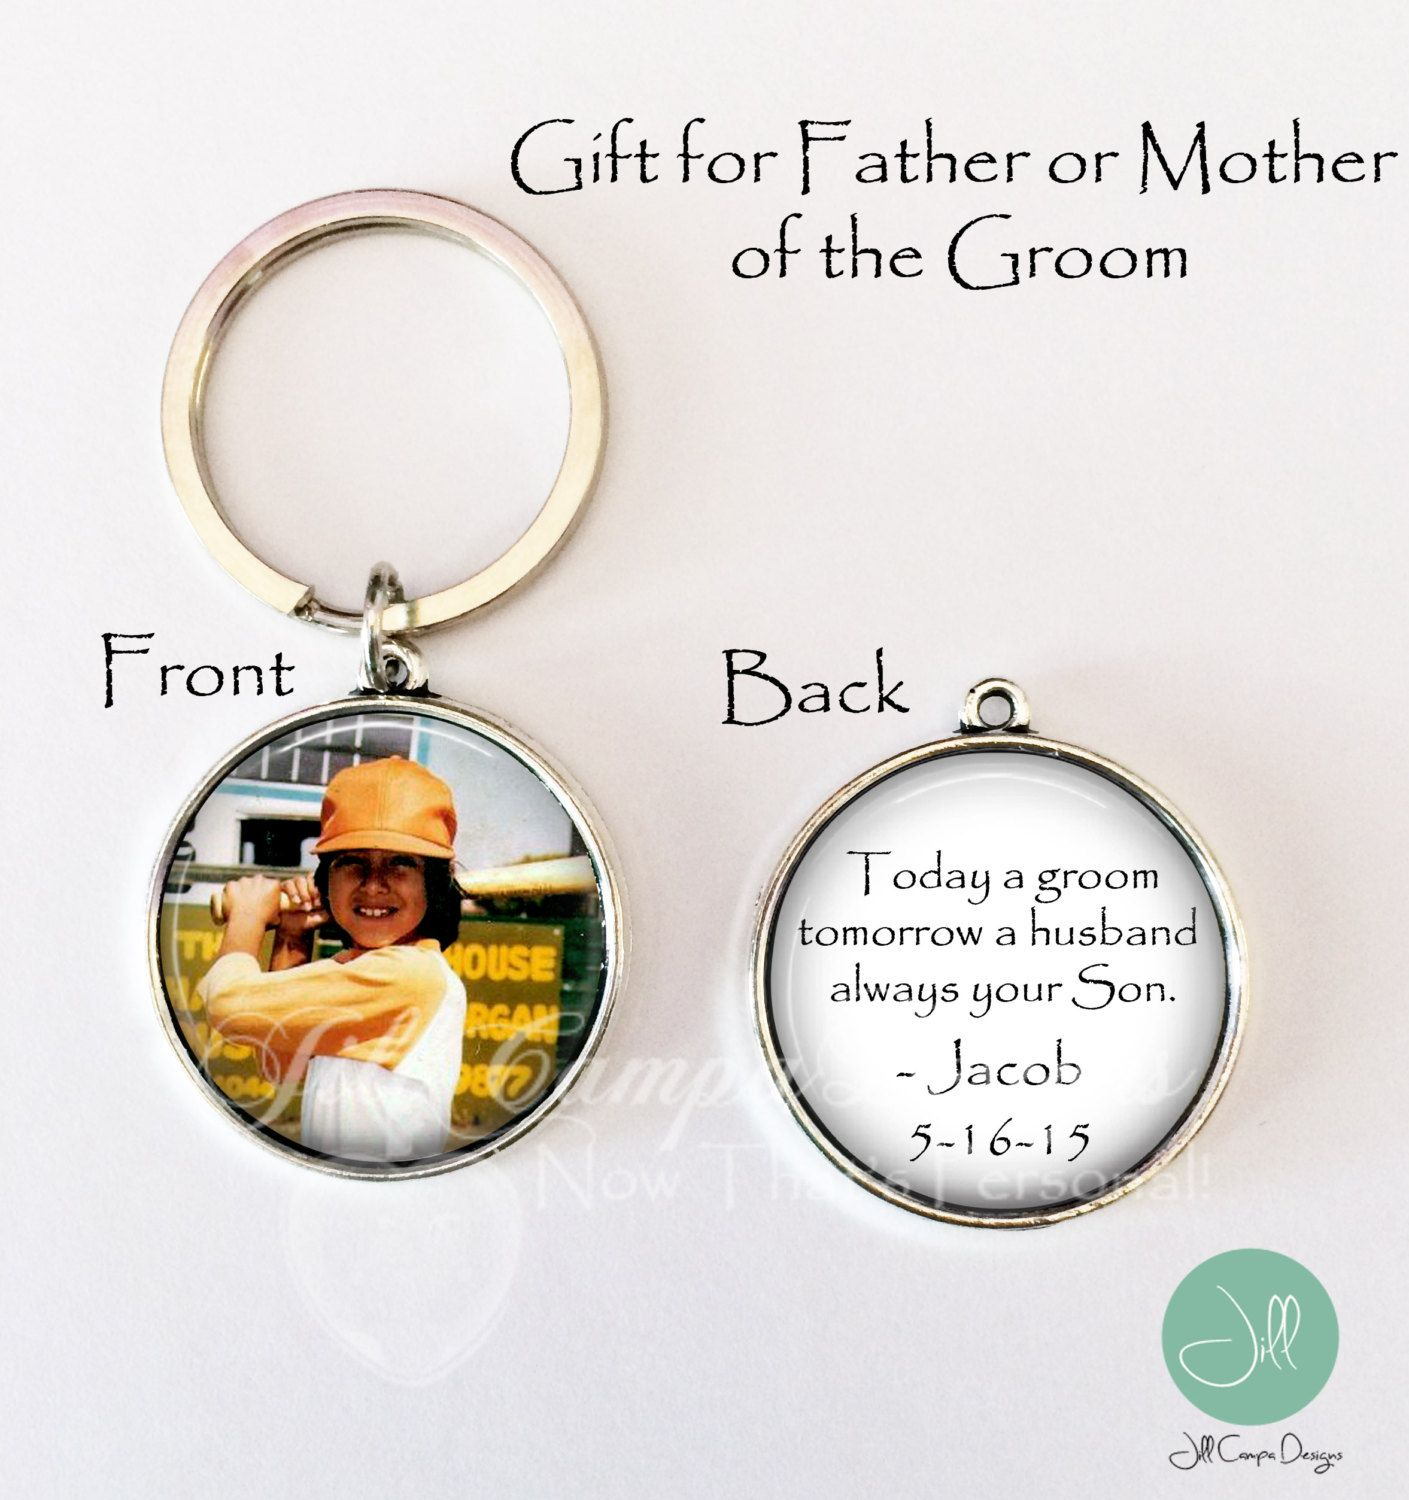 Perfect Groom Gifts From Bride Groom Gift Mor Groom Gift A Groom Parents Groom Gift A Groom Far Groom Gifts Etsy Far Groom Gift Mor Far